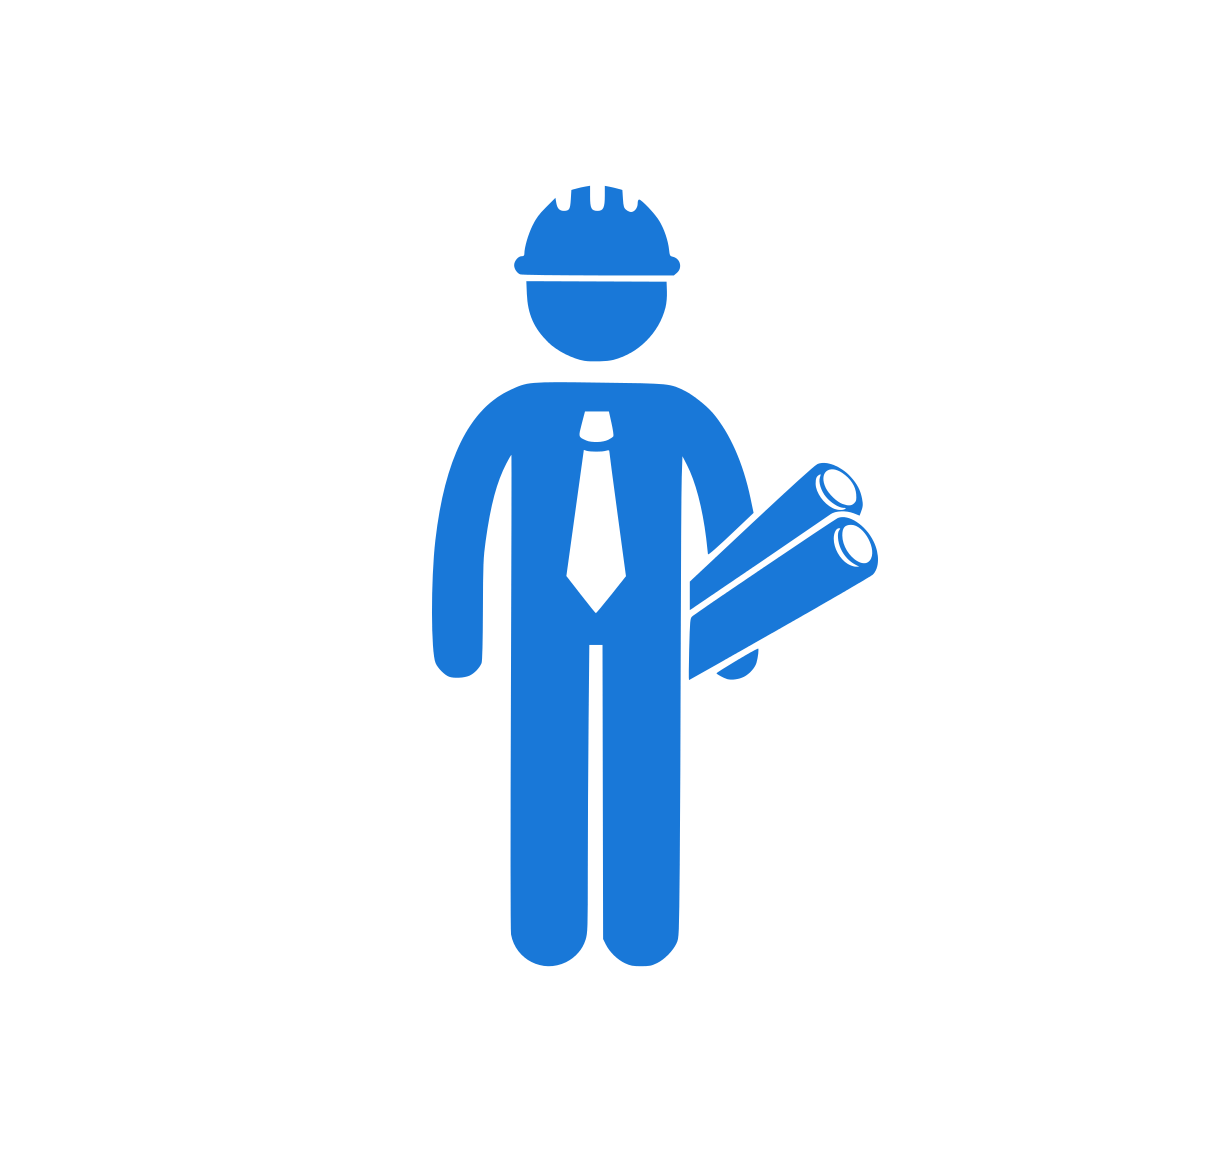 kisspng-architectural-engineering-silhouette-construction-construction-people-cliparts-5aae6bb4c17556.0486126515213802767924.png